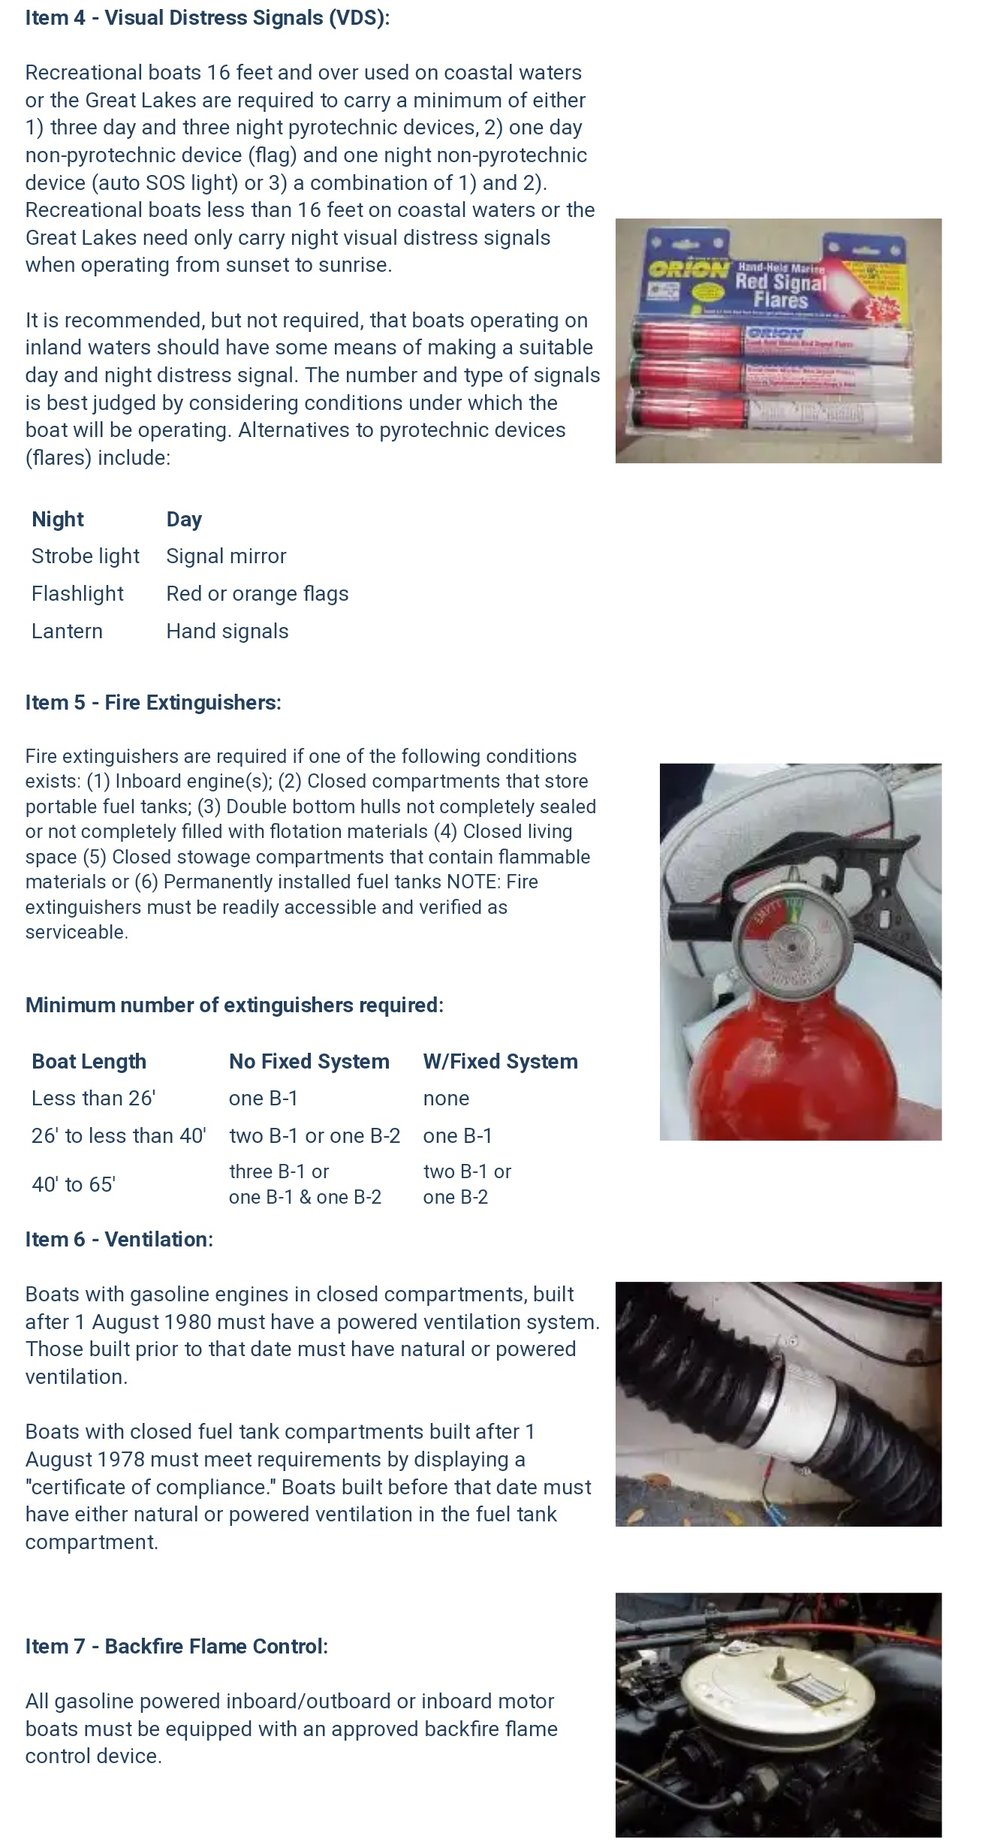 Vessel-Safety-Check-Item4to7-Knoxville-Boating